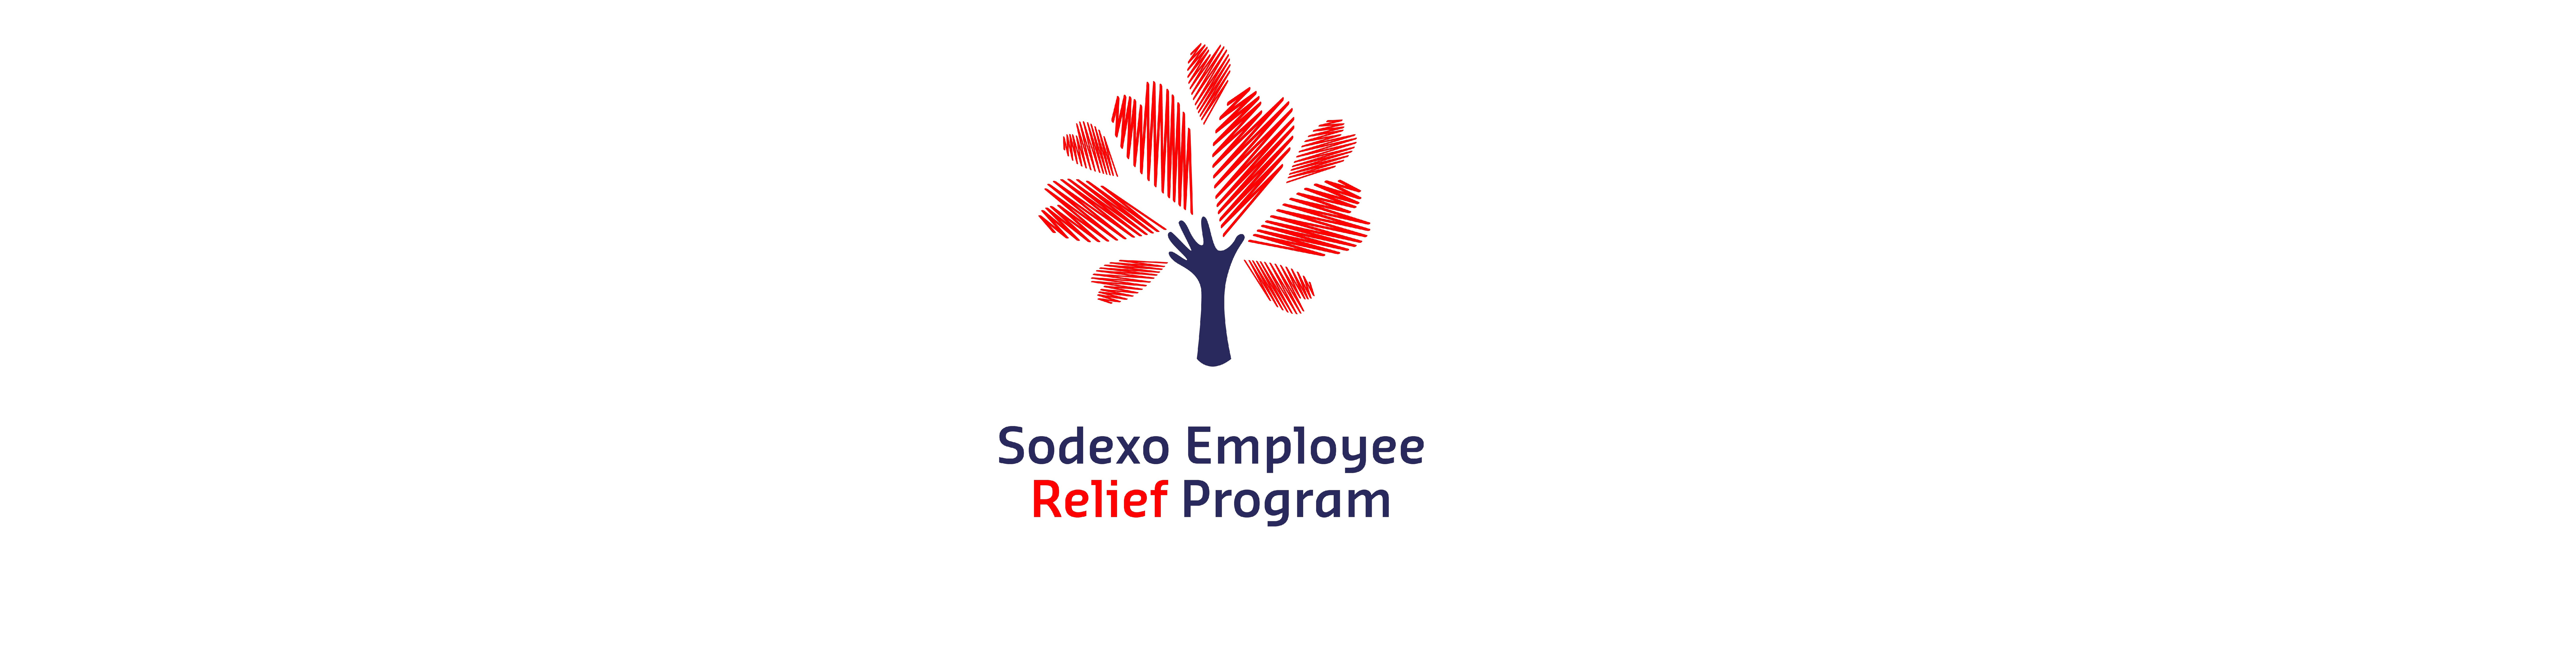 Logo Employee Relief Program di Sodexo